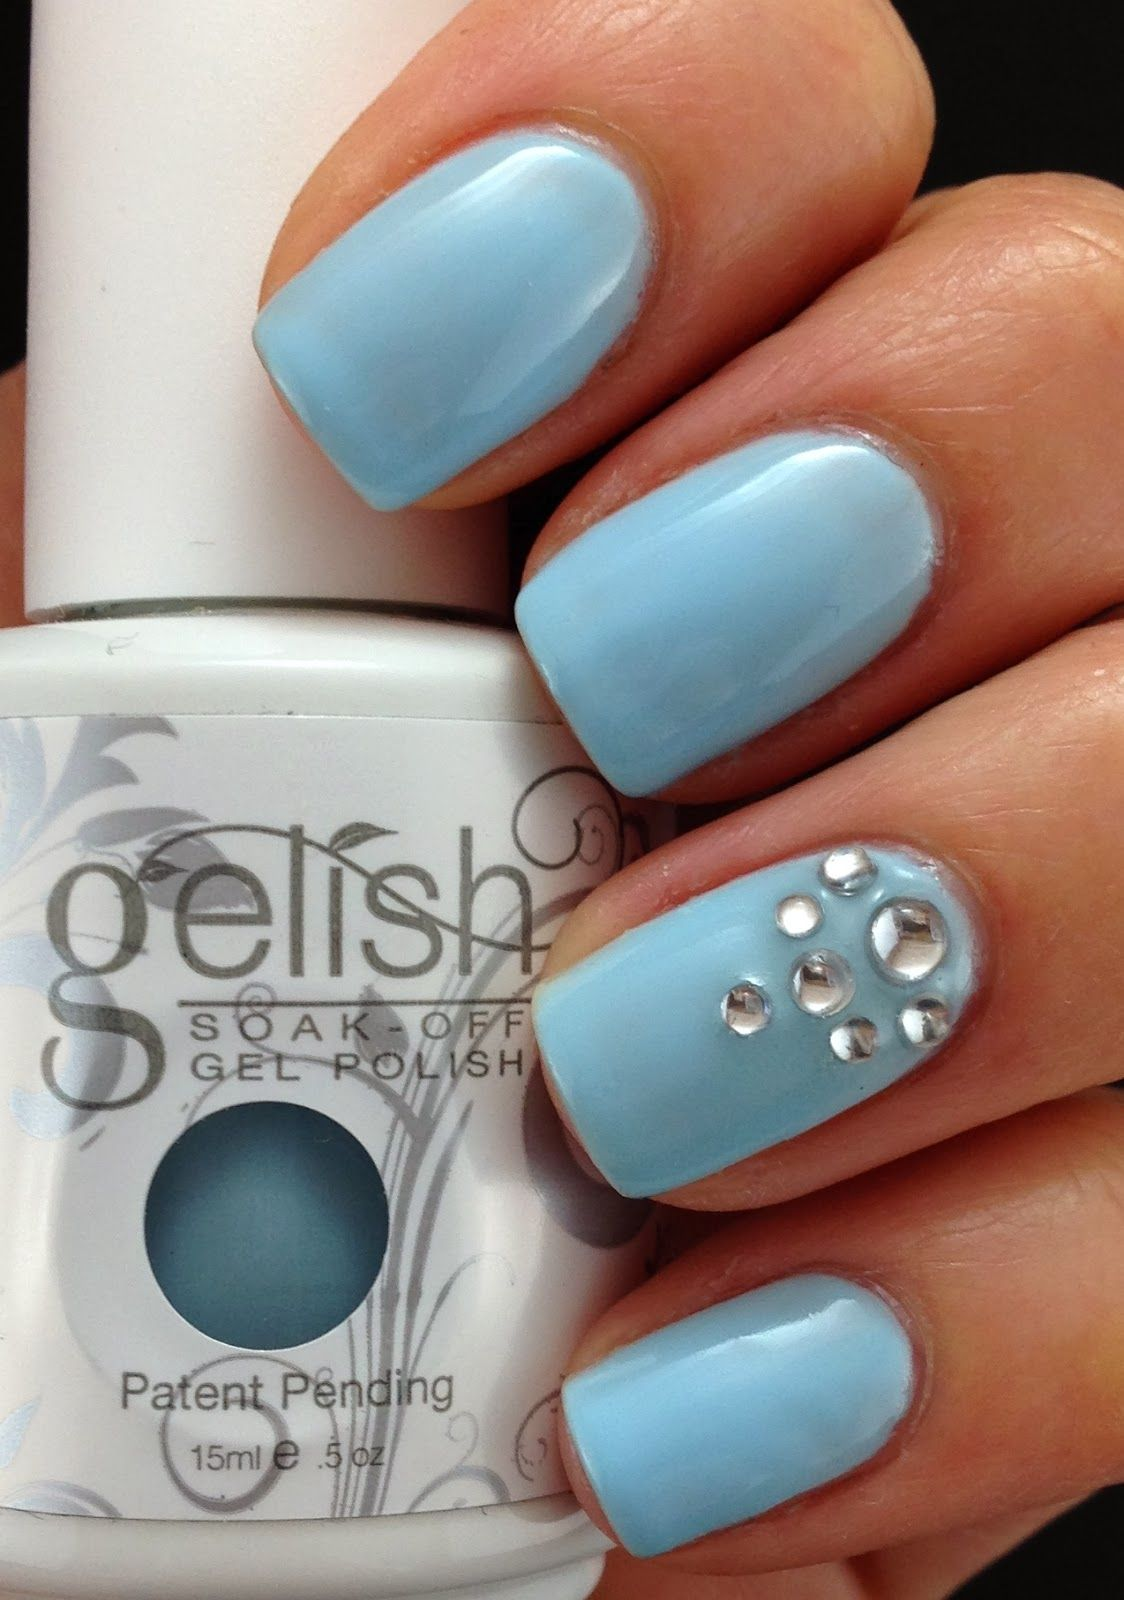 Gleish Once Upon A Dream Collection - My One Blue Love #lslfunblog ...